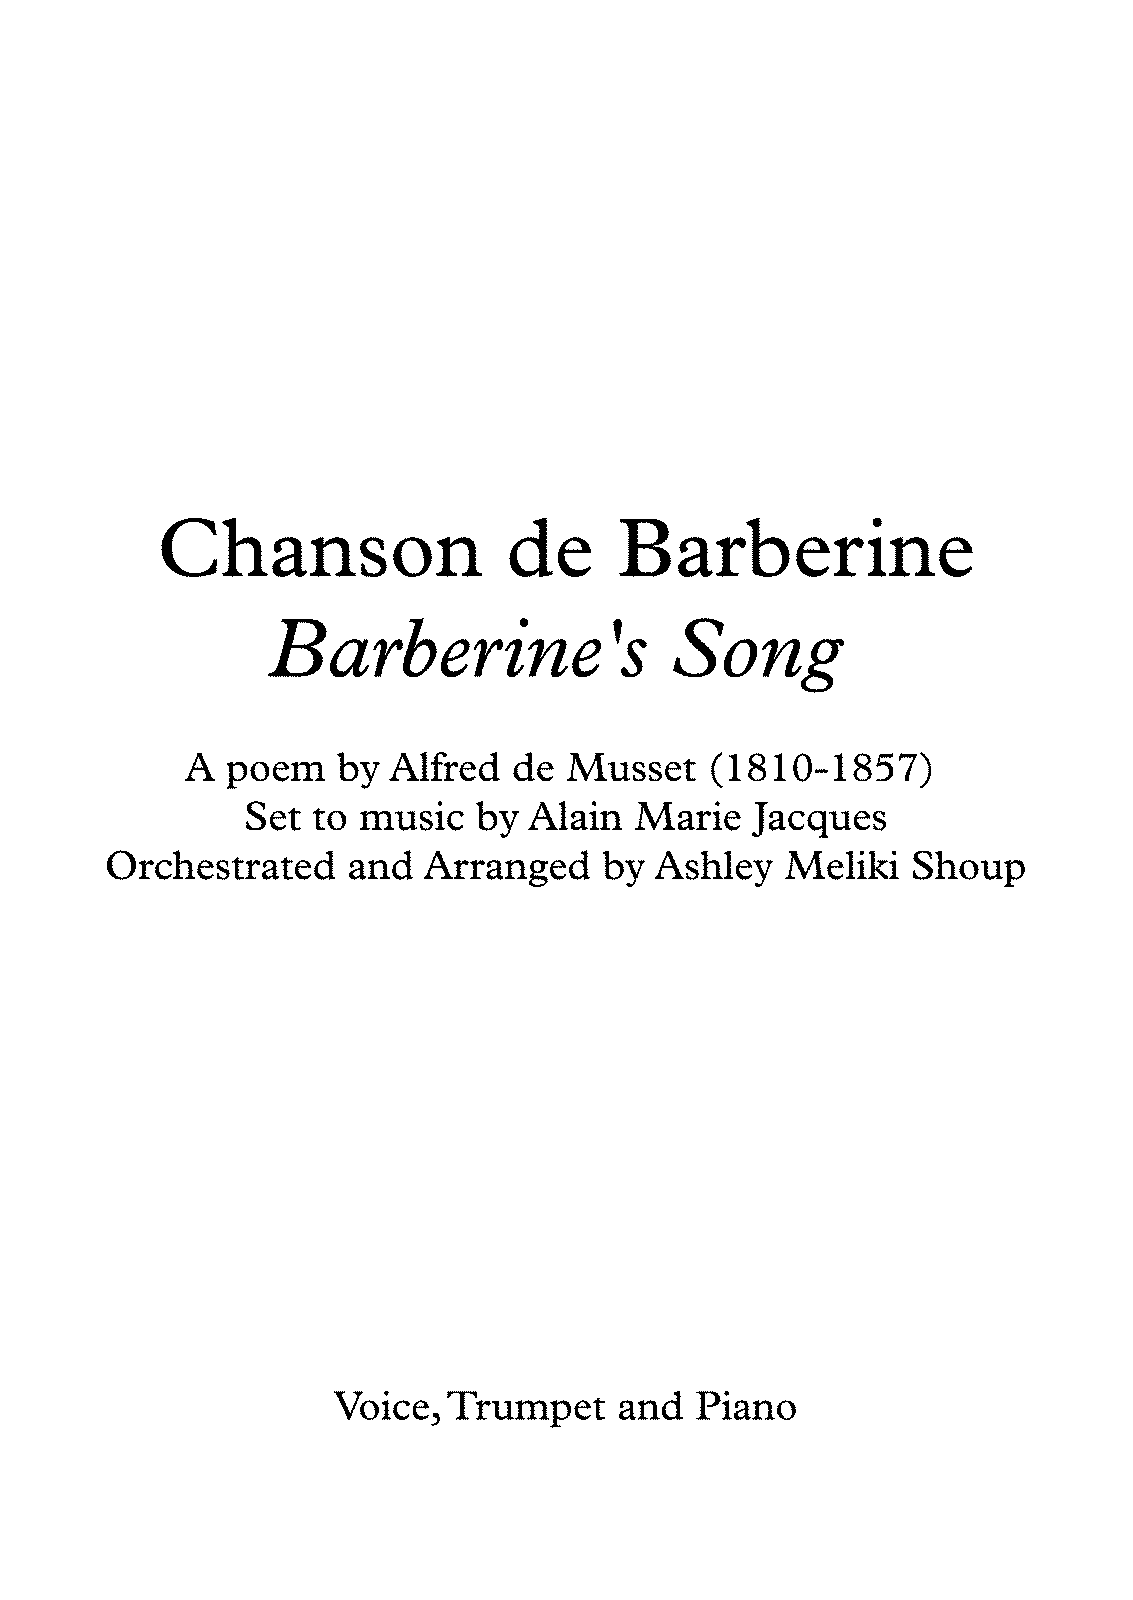 PMLP449253-Chanson de Barberine - Bilingual - Full Score.pdf